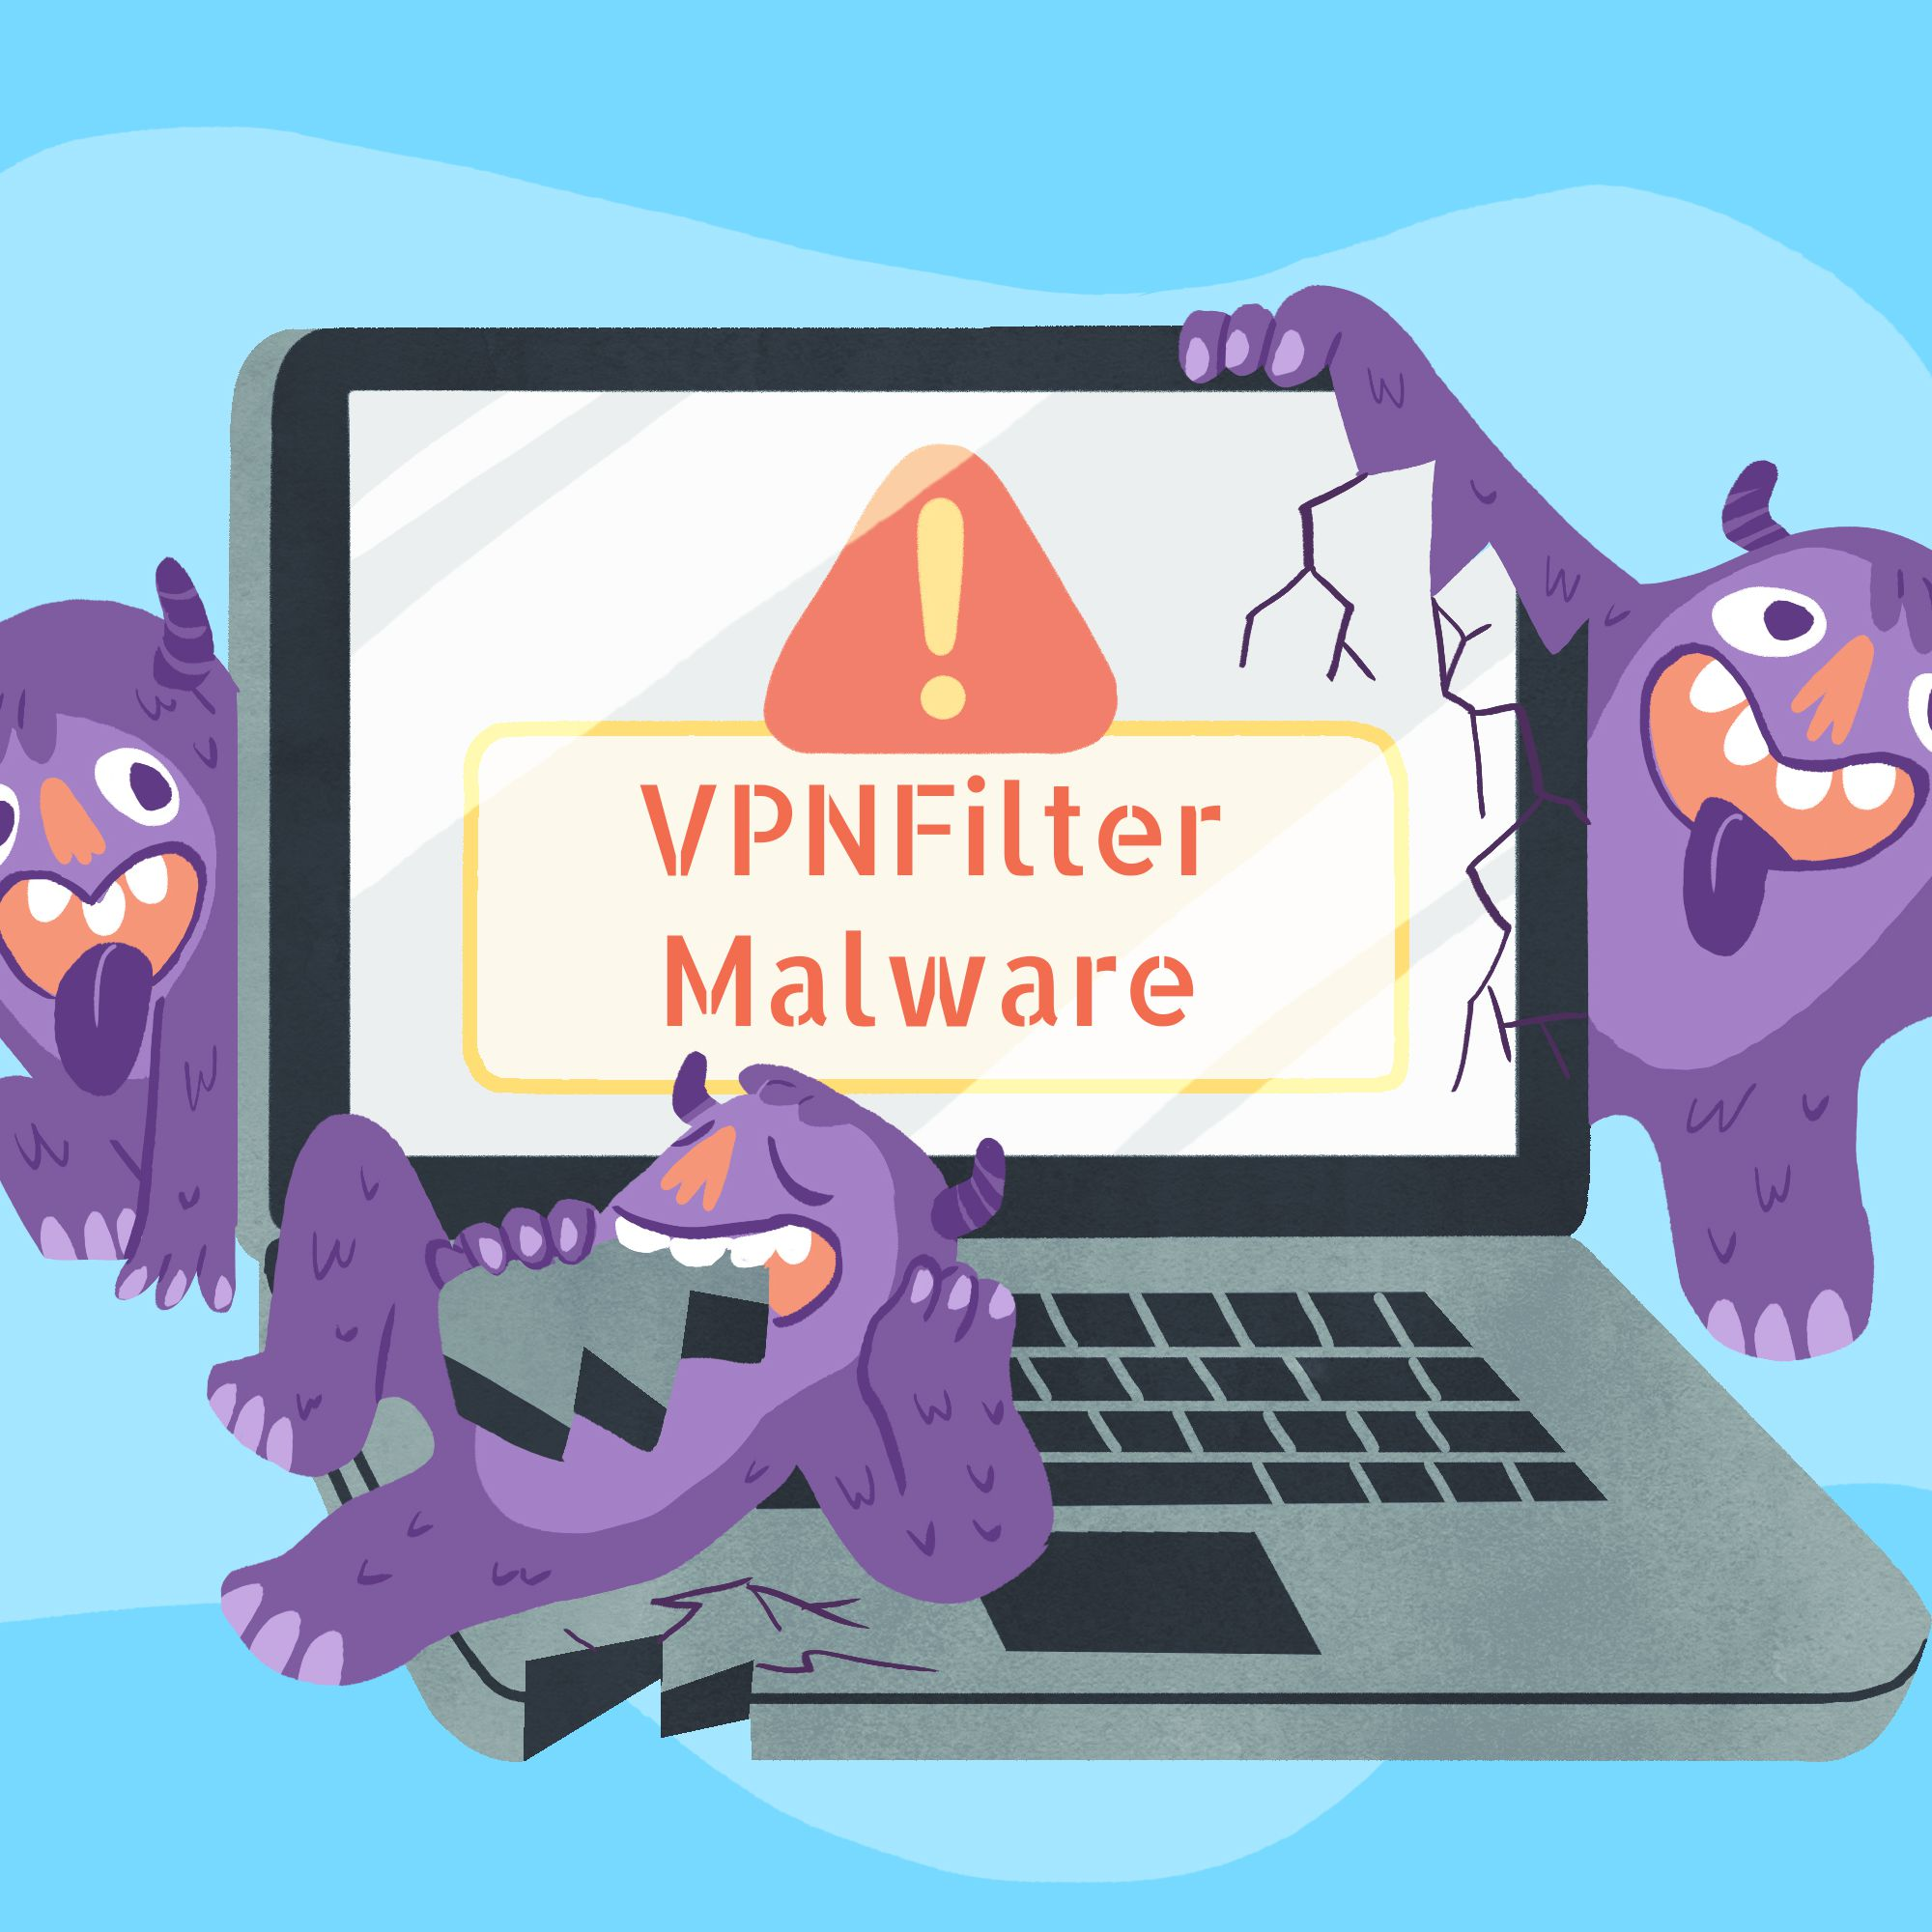 The VPNFilter Malware Virus: What It Is and How to Remove It